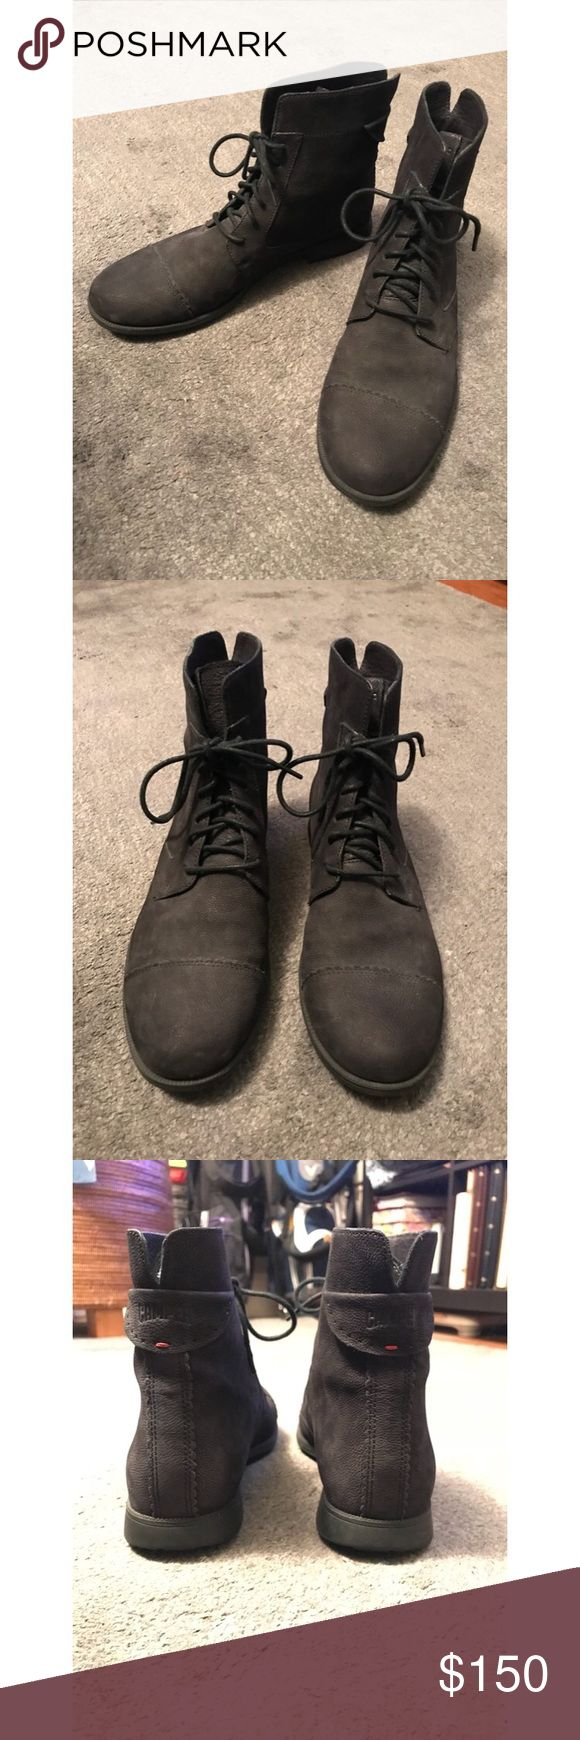 Women's Camper Boots - Bowie K400022 Brand new, black lace up boots. Camper Shoes Ankle Boots & Booties